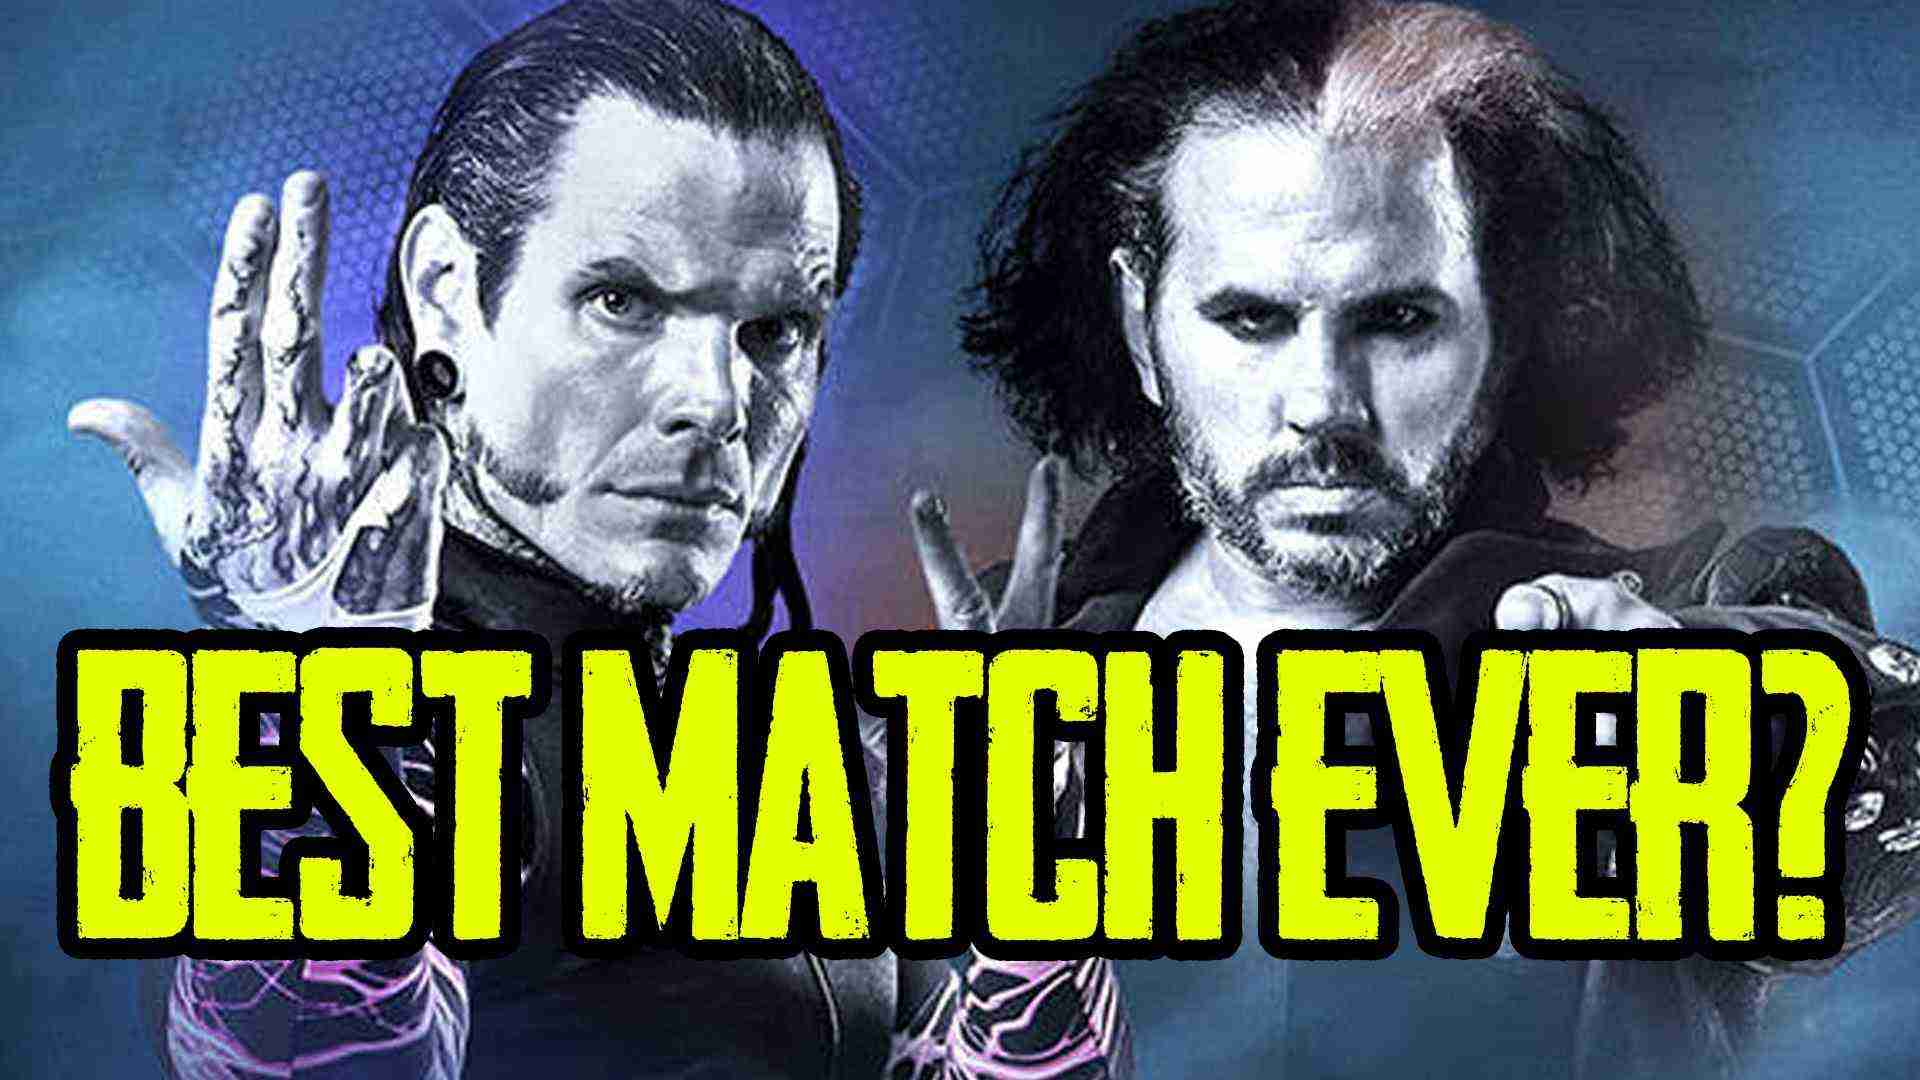 THE FINAL DELETION: BEST MATCH EVER? (NXT and WWE Smackdown Recap and Results w/ Steve and Larson)